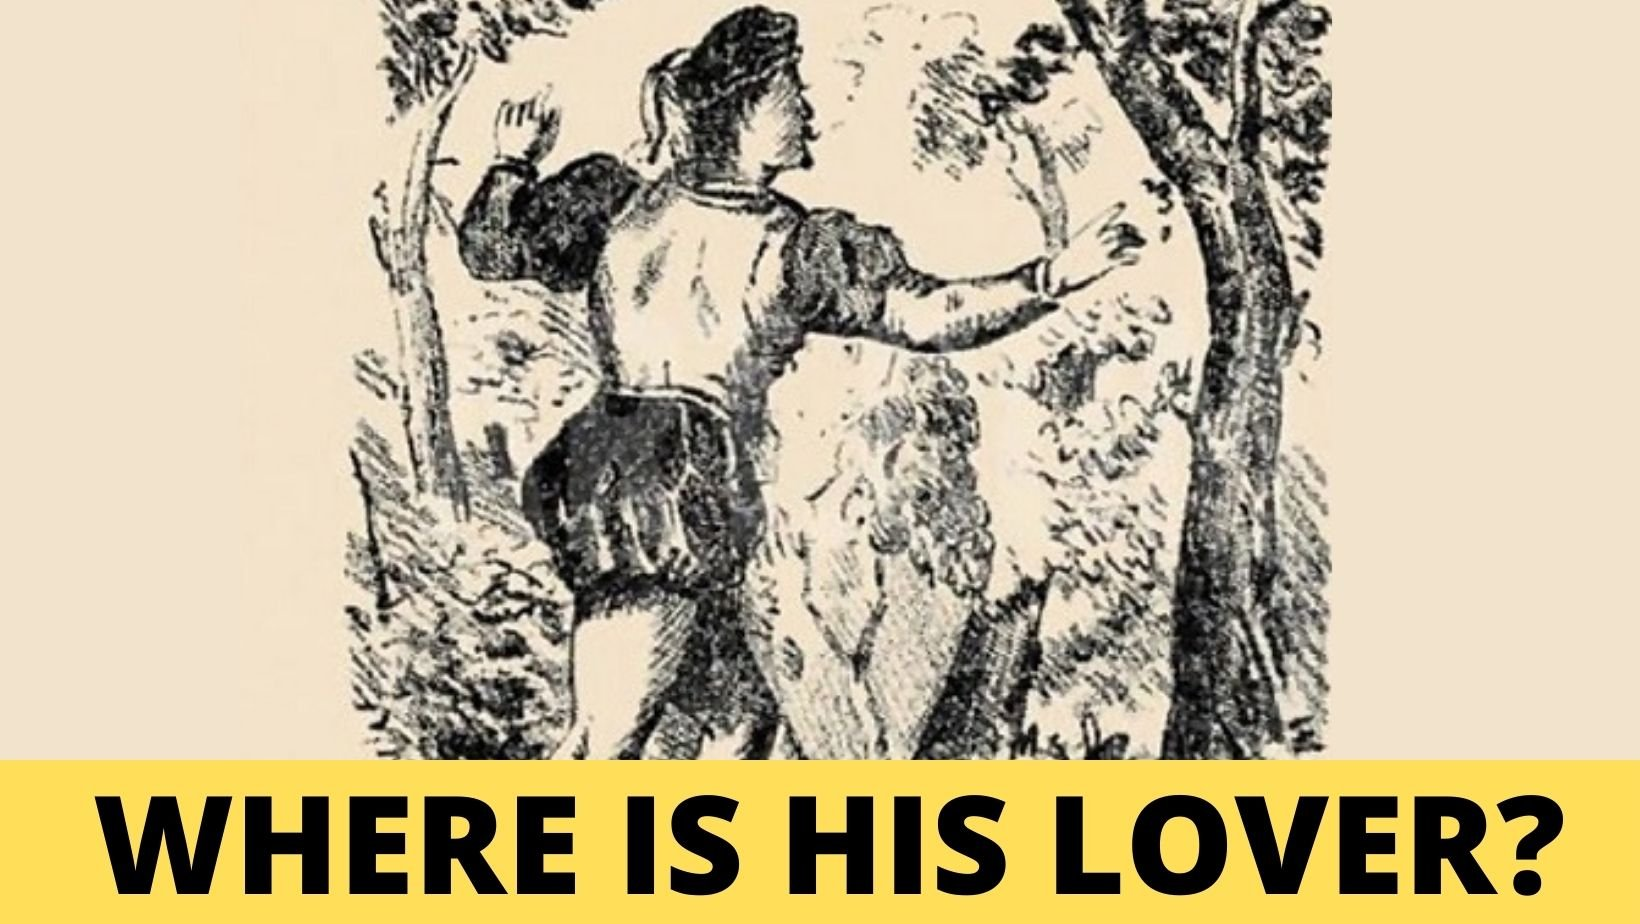 small joys thumbnail.jpg?resize=1200,630 - A Man Is Desperately Looking For His Lover, Can You SEE her?